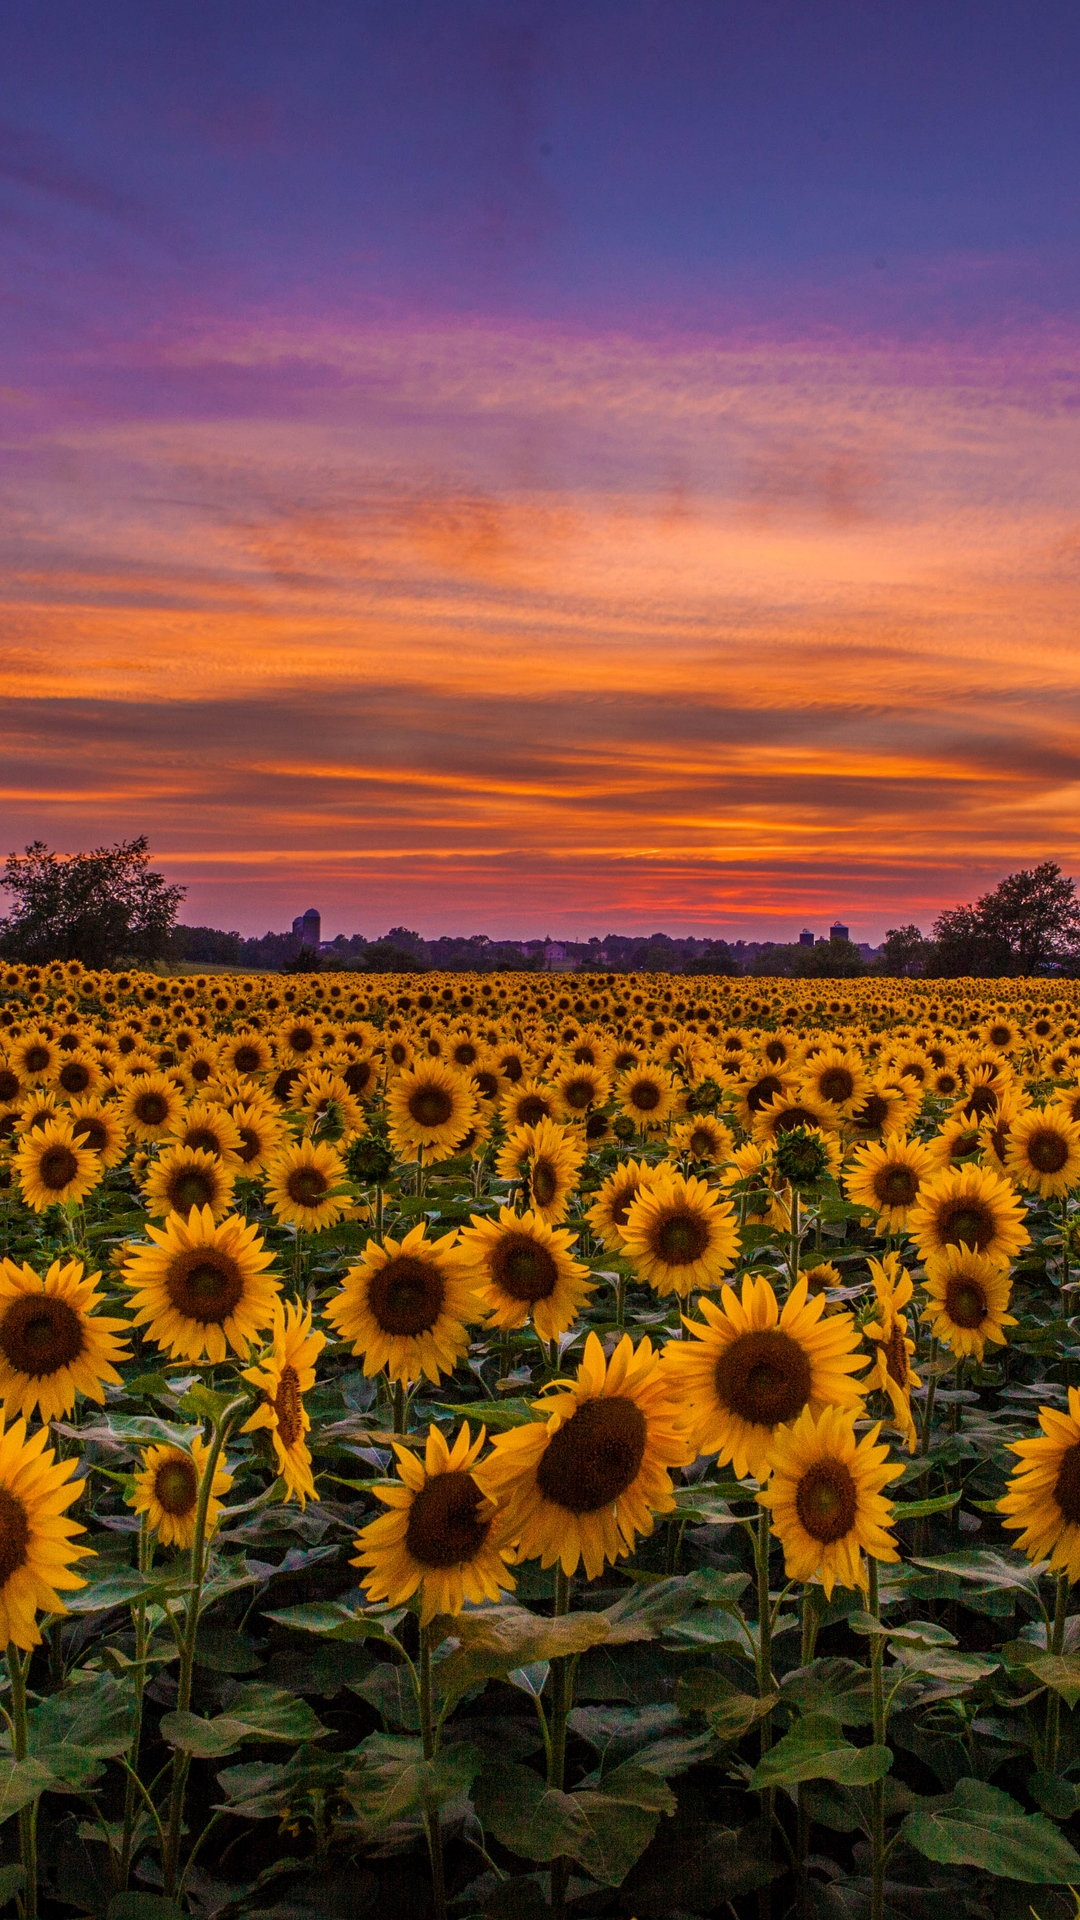 Download car iphone wallpaper in hd best collection for free and set as wallpaper for your apple iphone x, iphone xs home screen … Sunflowers Field Sunset Wallpaper - 1080x1920